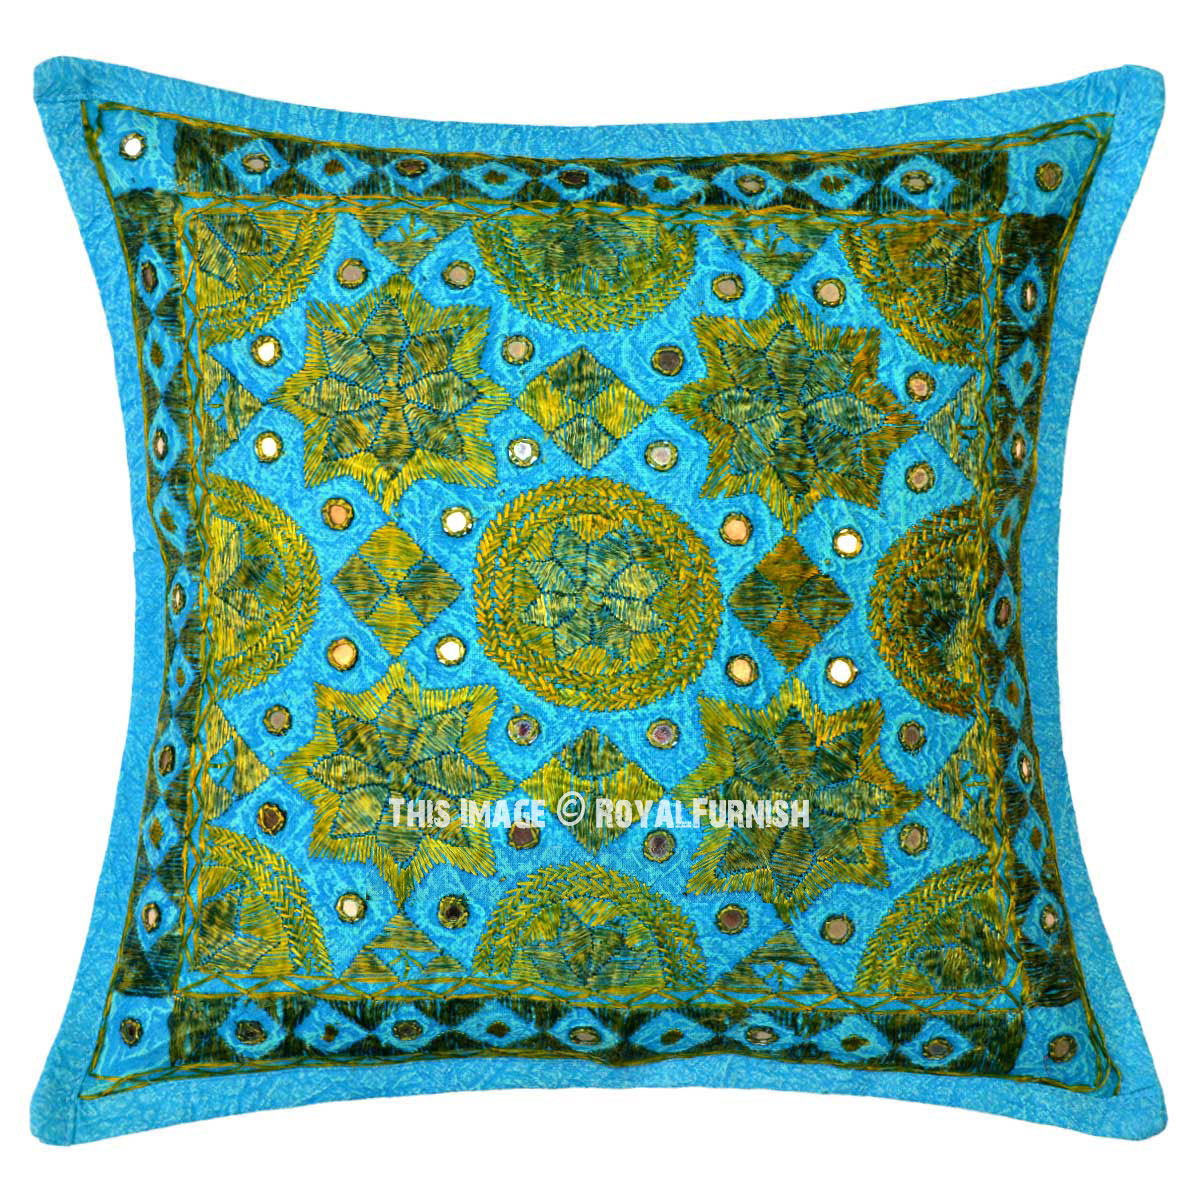 Turquoise Blue Decorative Star Mirrored Square Throw Pillow Cover 16X16 - RoyalFurnish.com